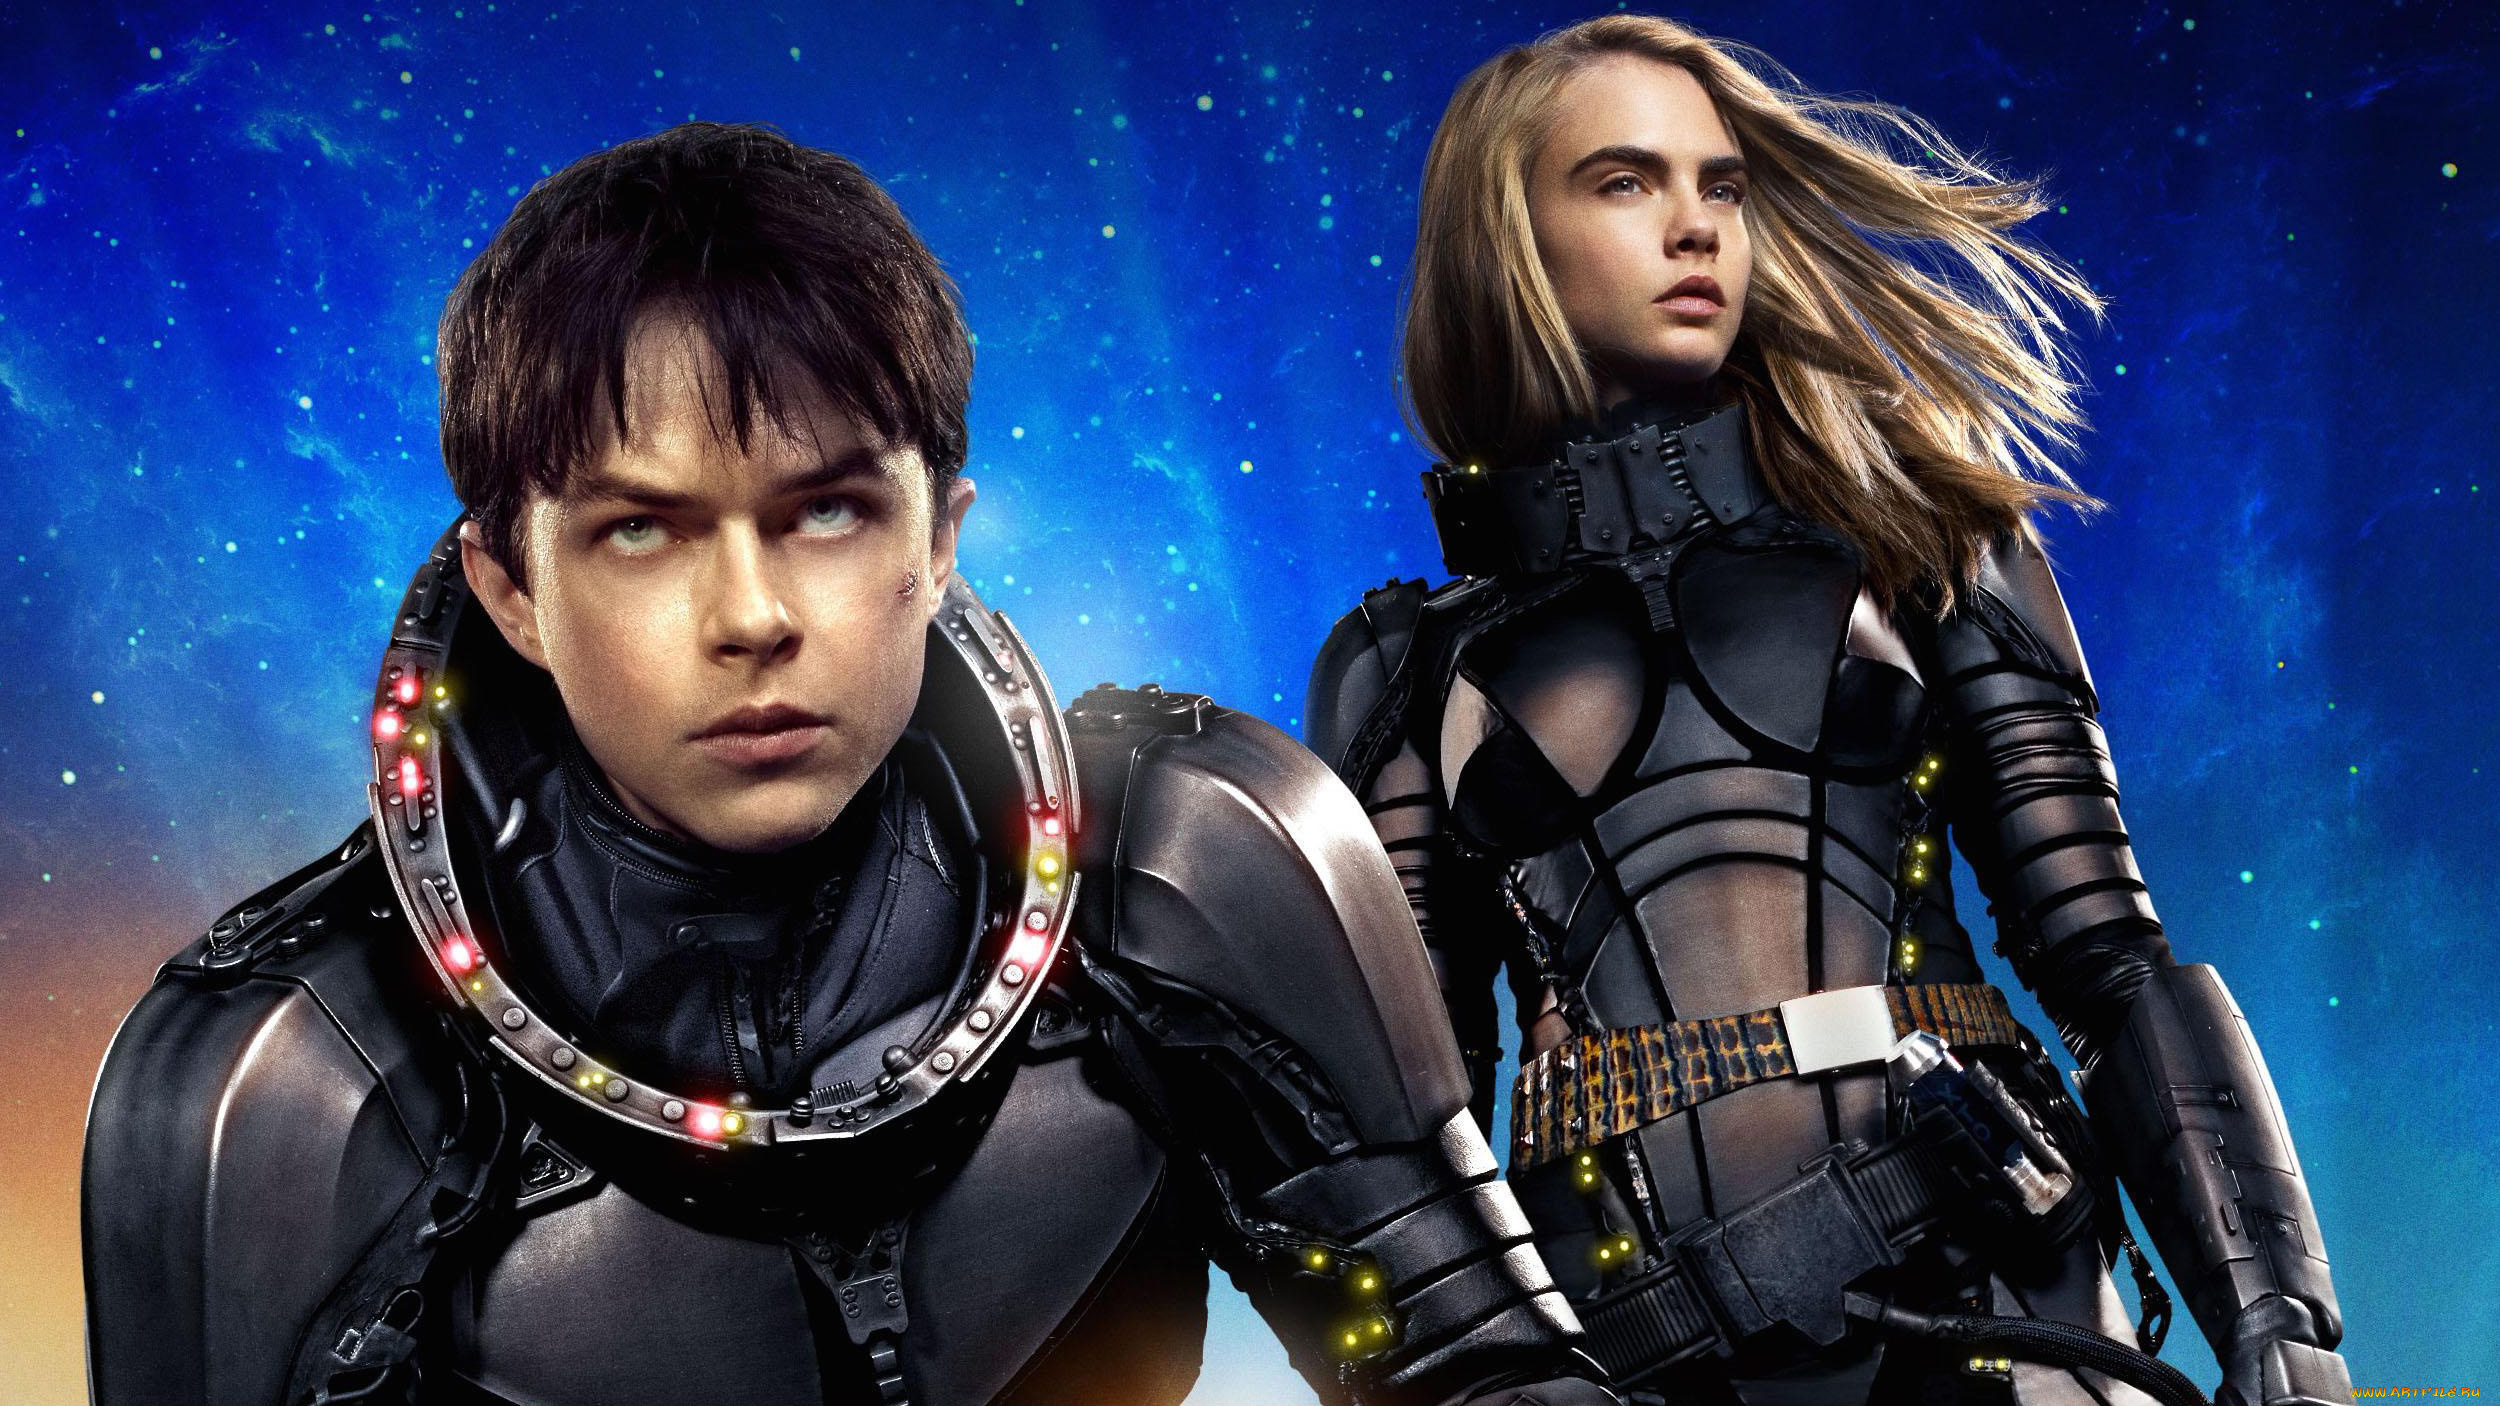 newest space movies